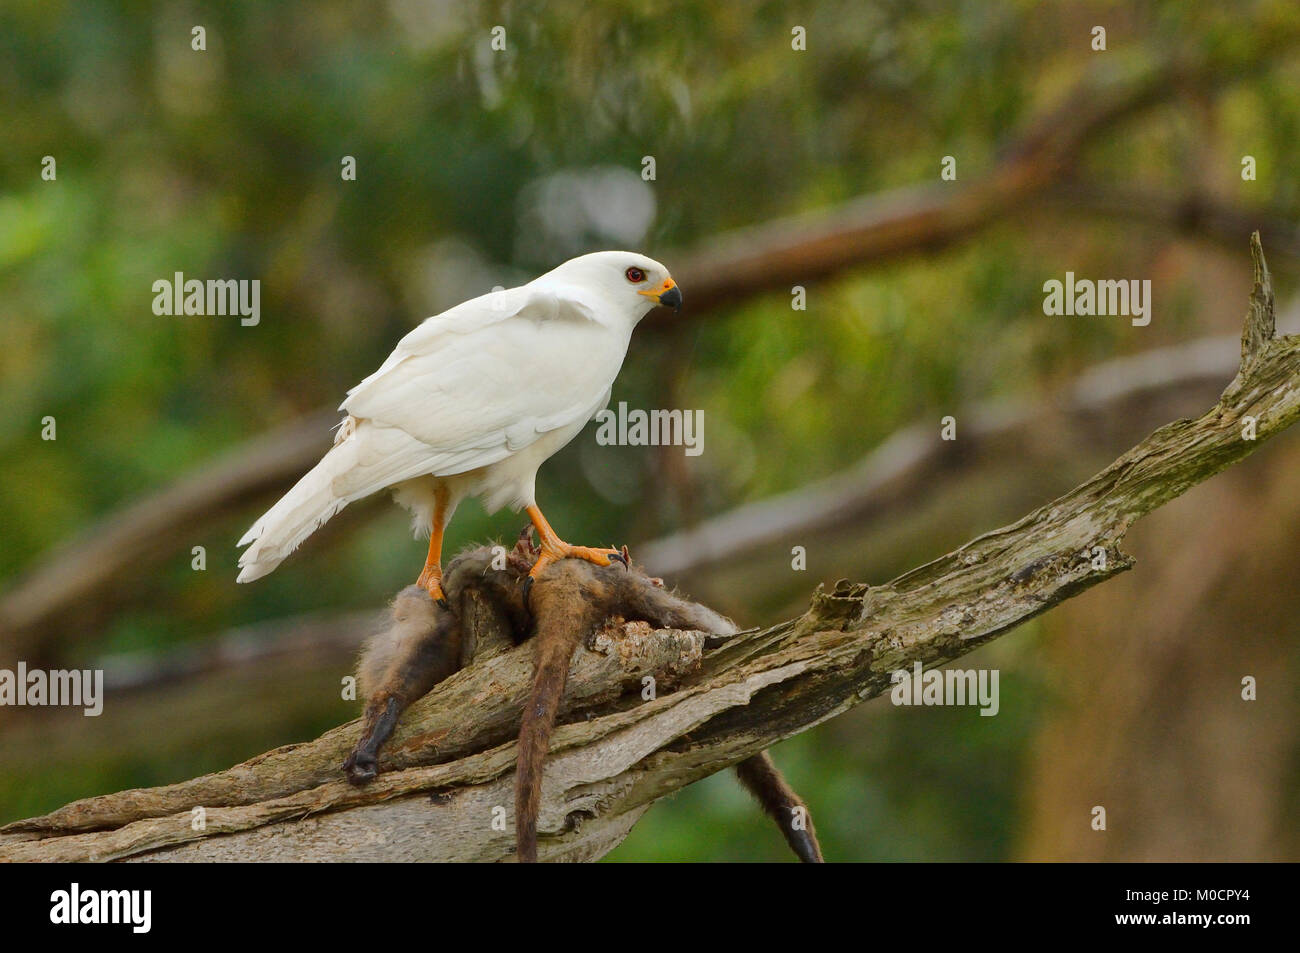 Grey (White) Goshawk Accipiter novaehollandiae With prey	 Photographed in Tasmania, Australia Stock Photo